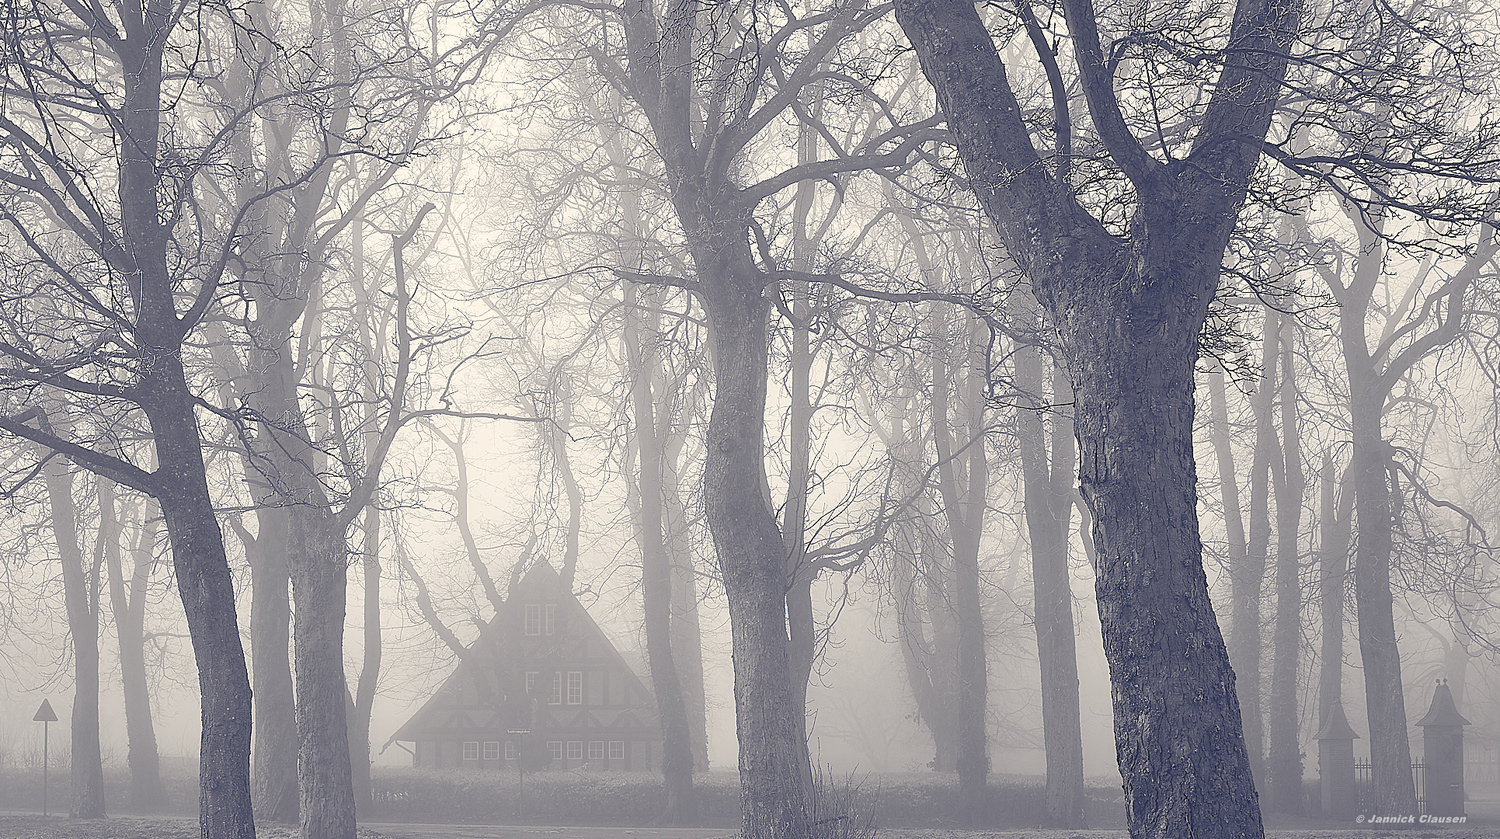 Foggy house in the woods by Jannick Clausen